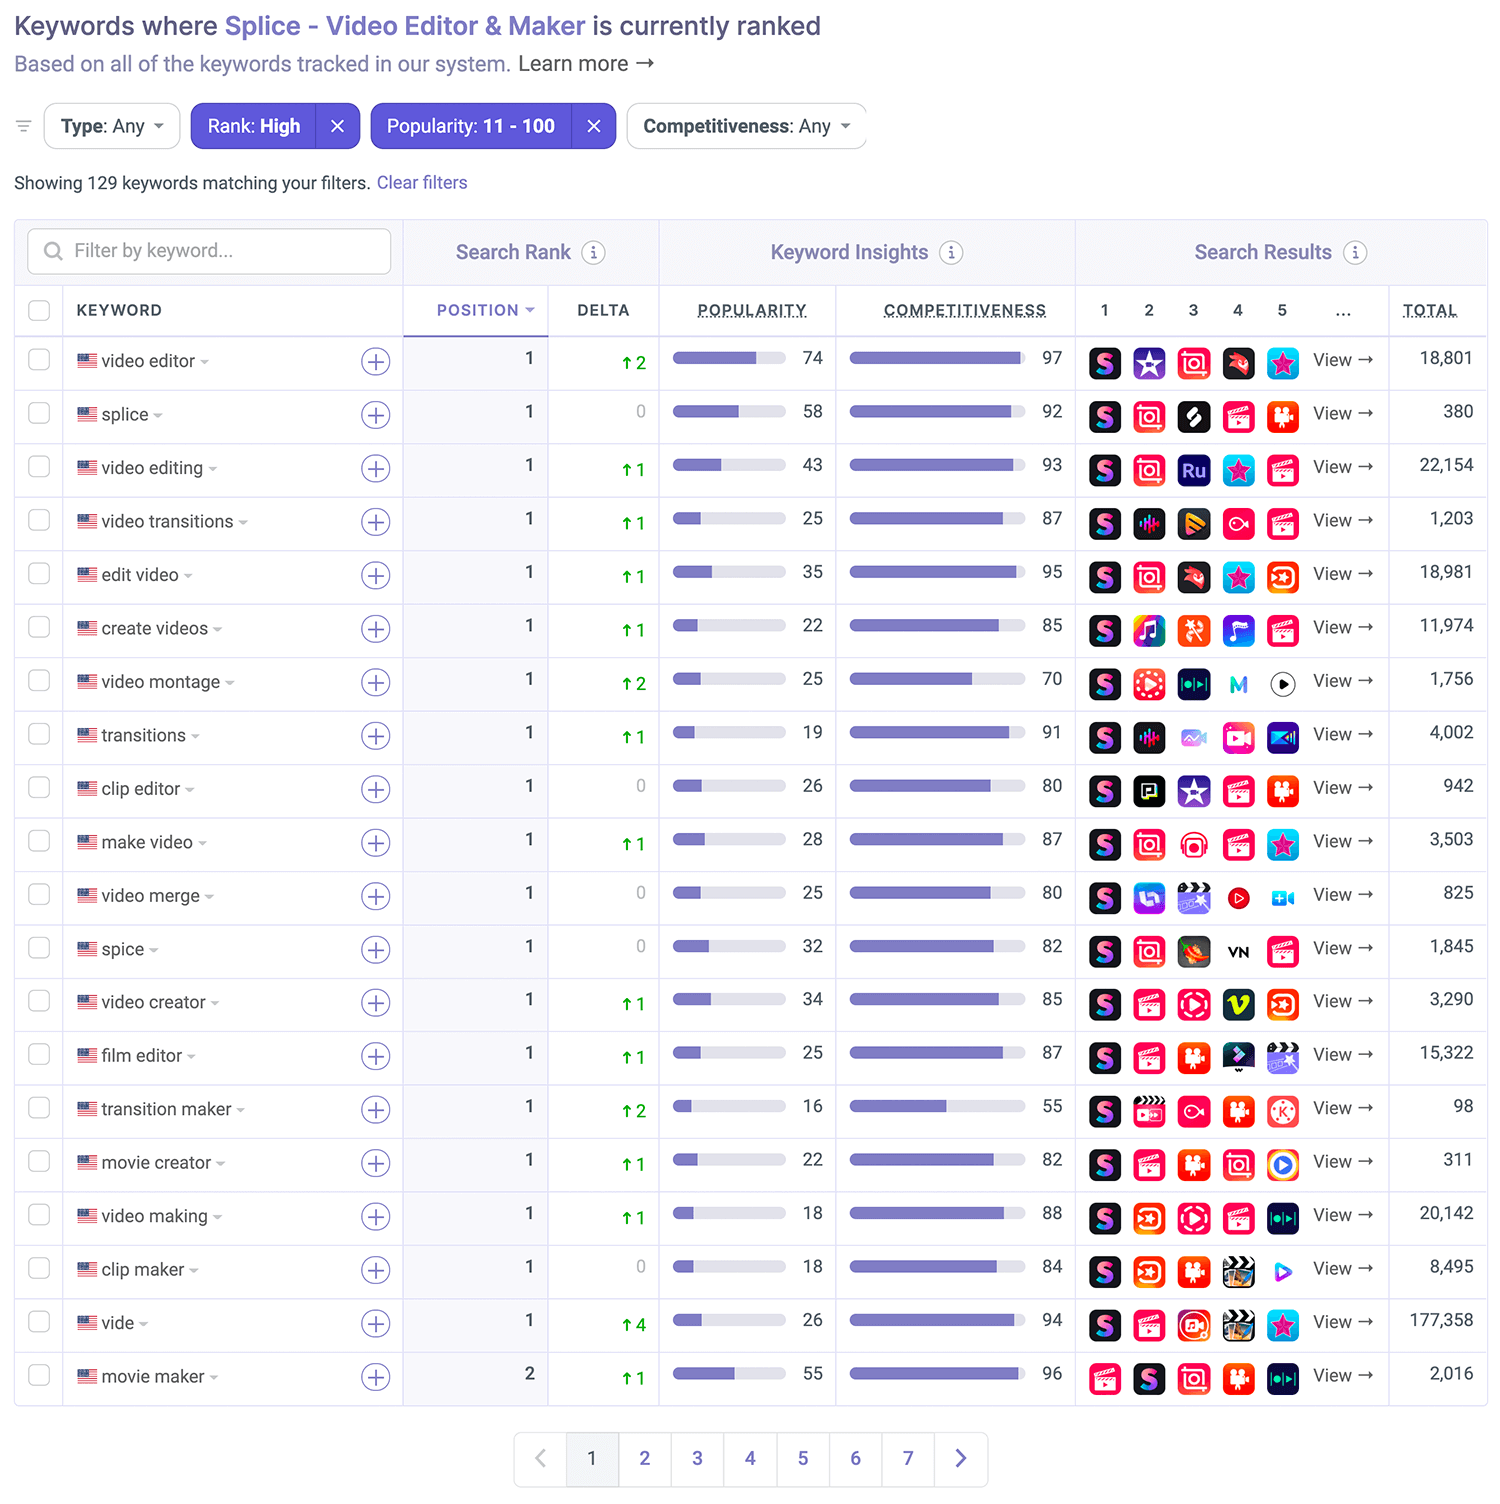 Where Splice is ranked on the App Store by Appfigures